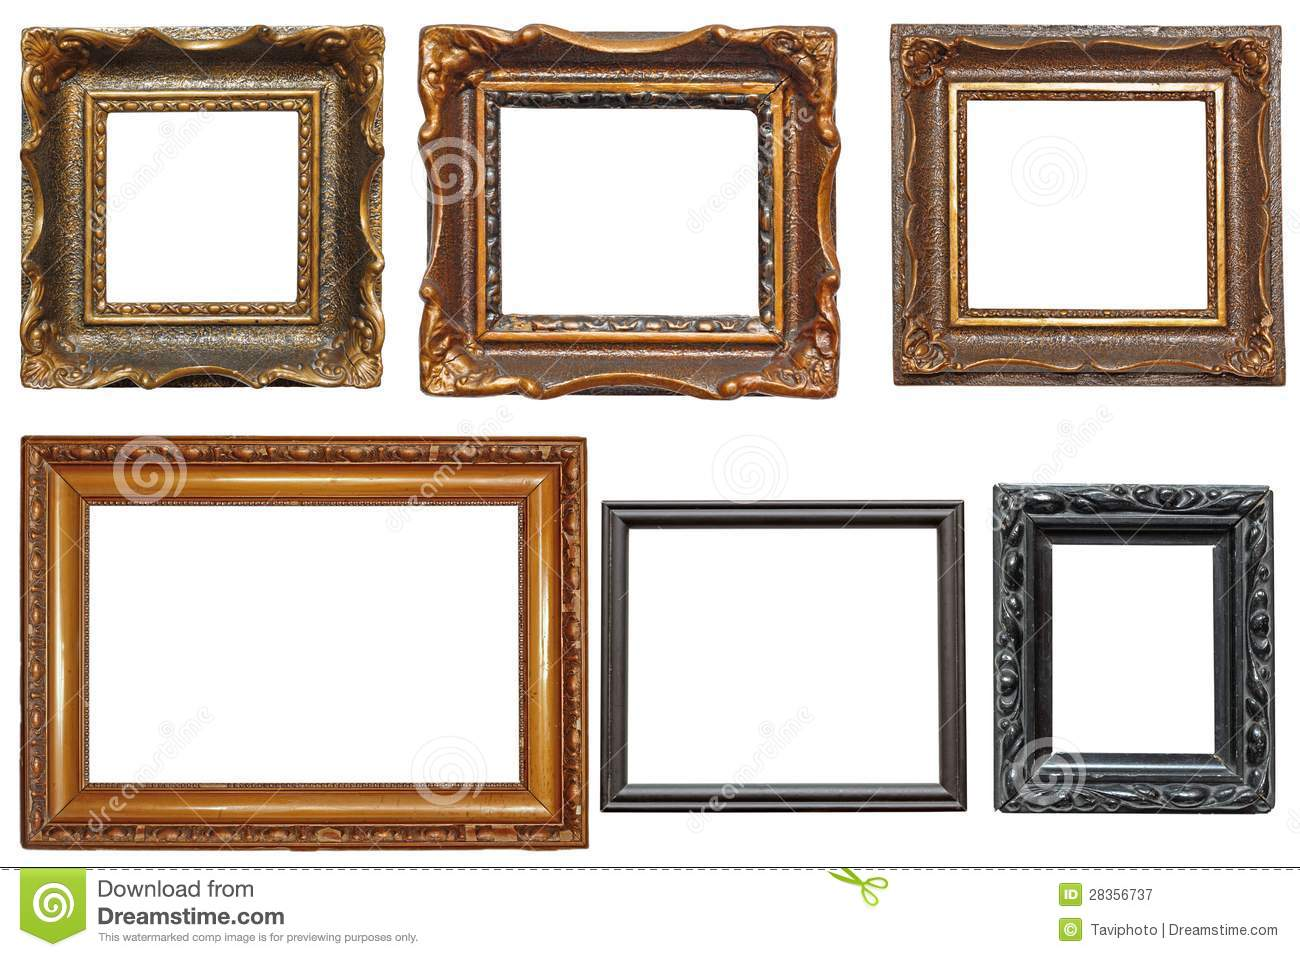 Collection Of Very Old Painting Frames Stock Image - Image of ...